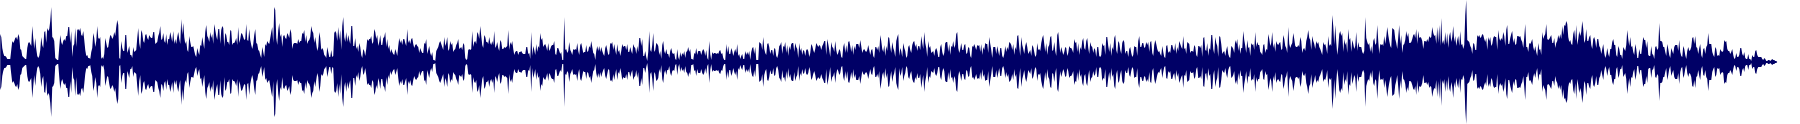 waveform of track #69404